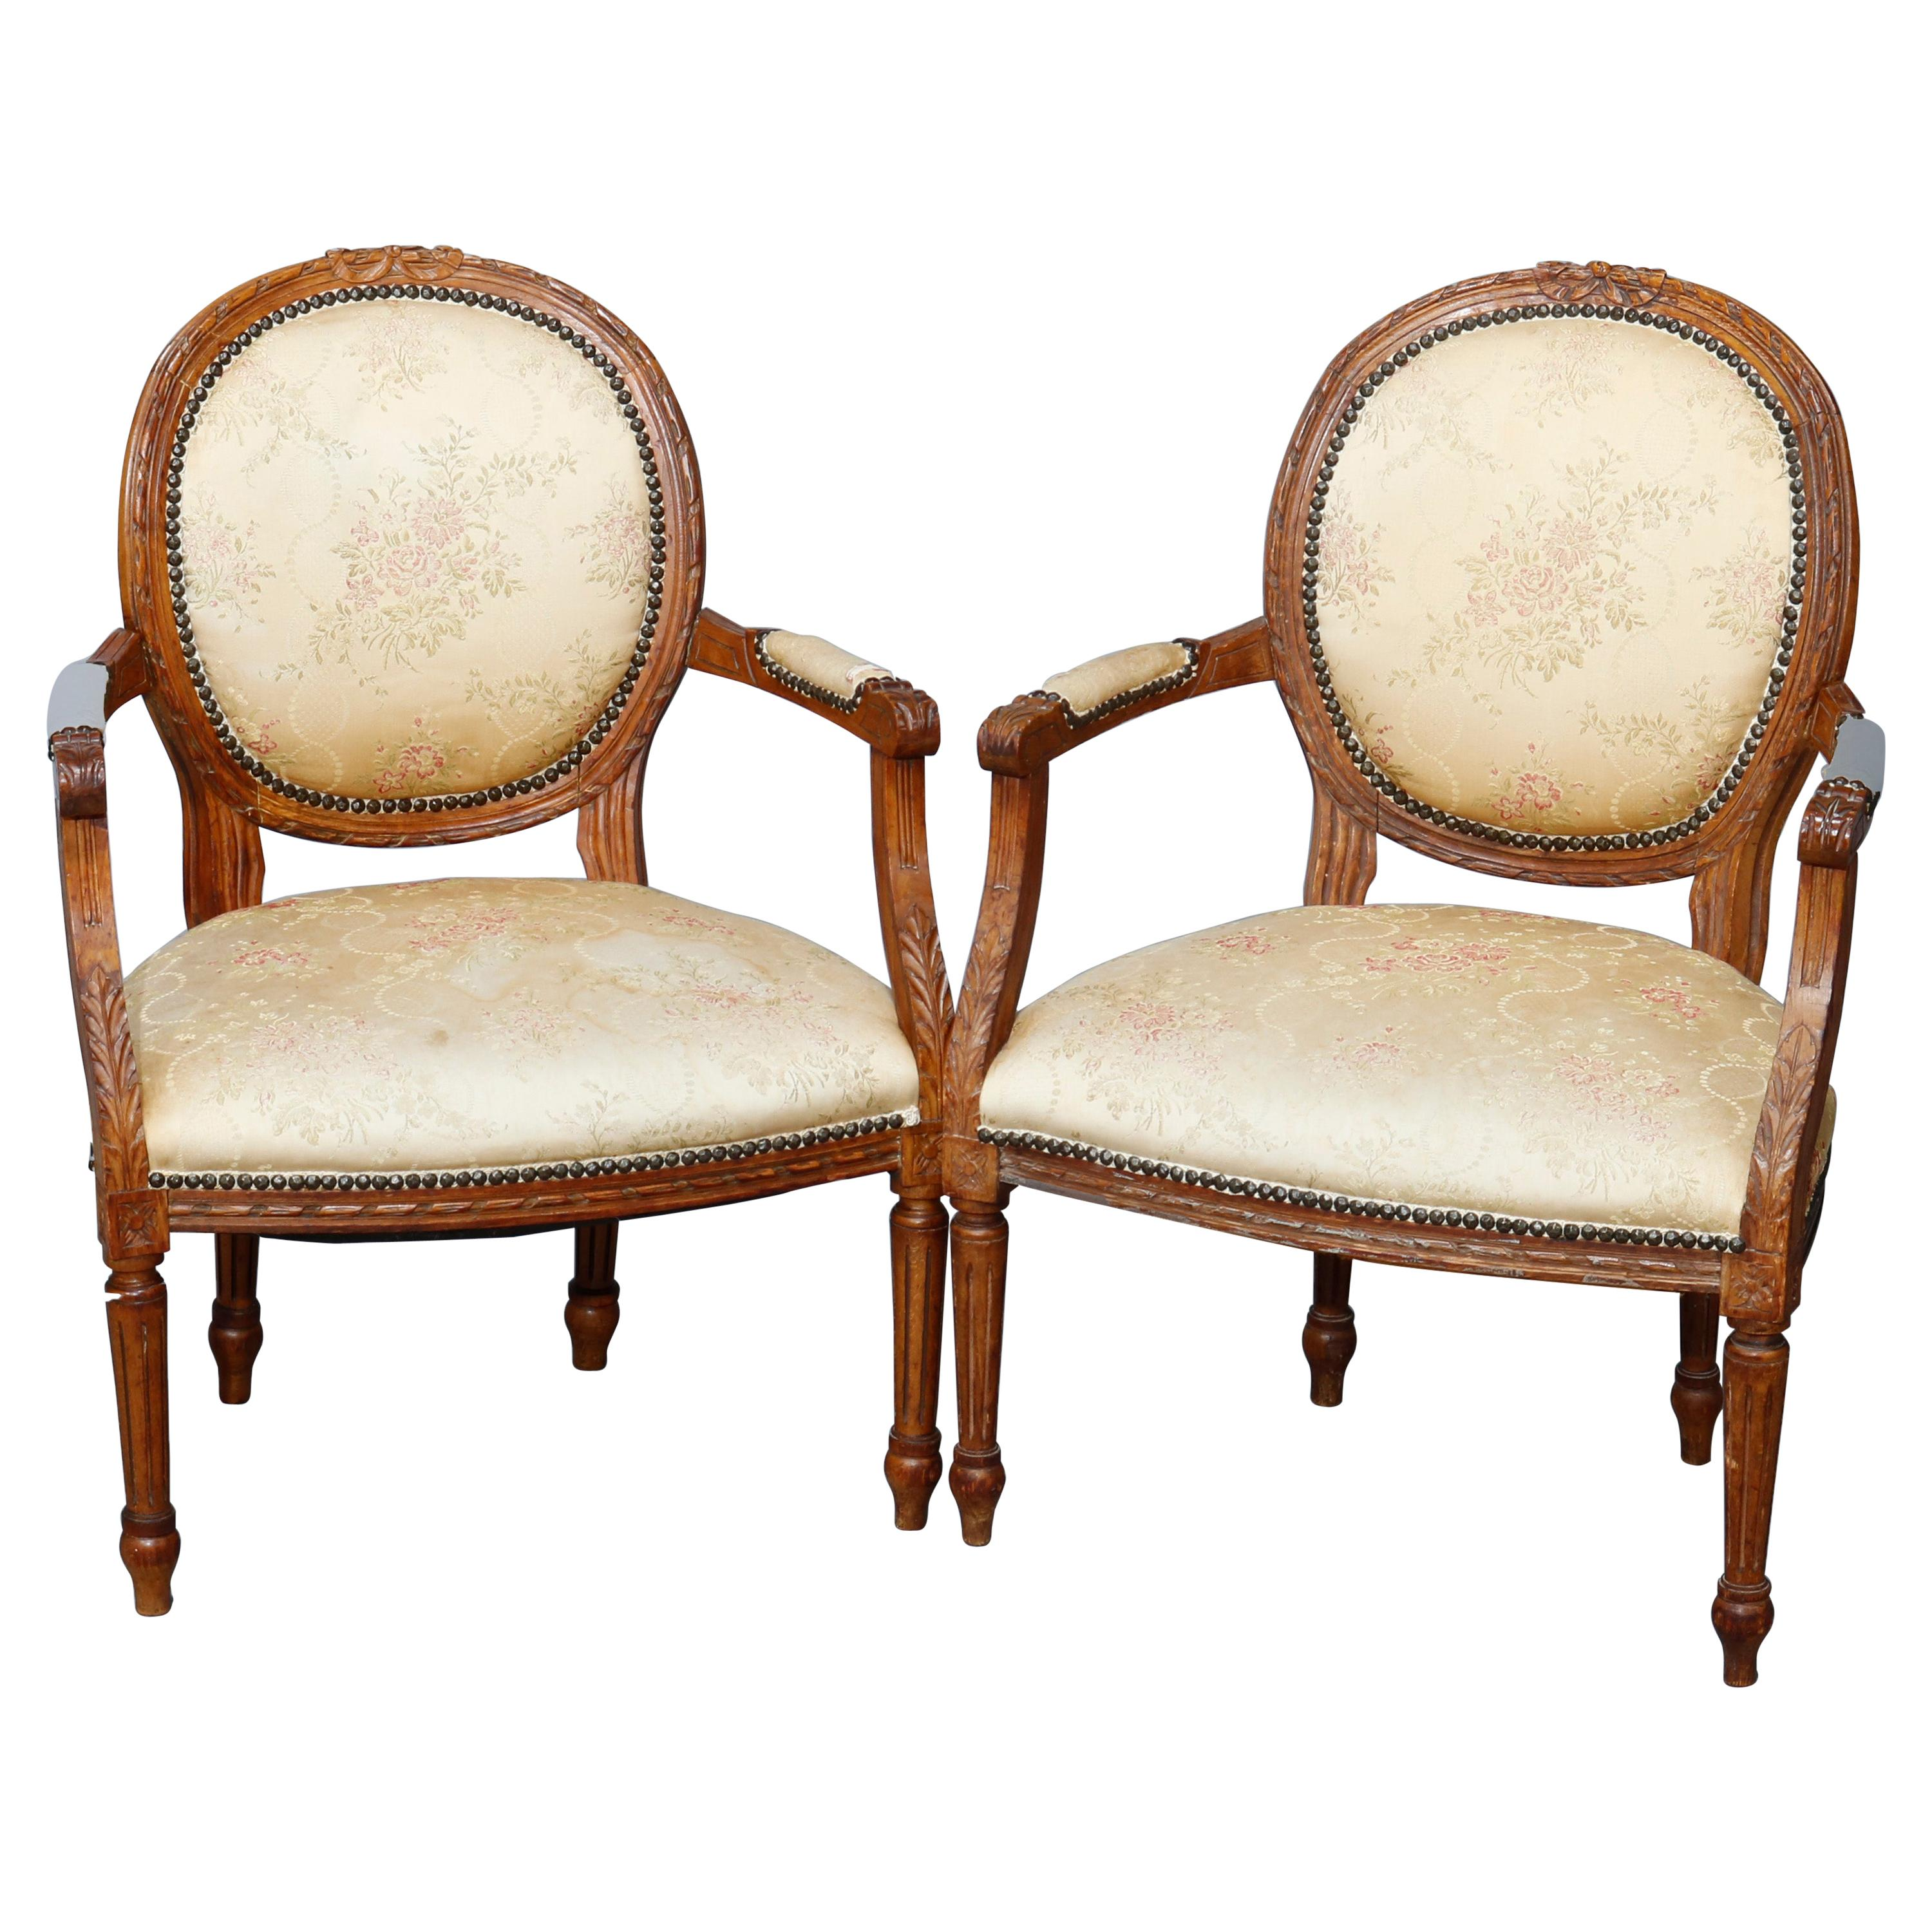 Antique Pair of French Louis XVI Style Walnut Fauteuil Armchairs, 19th C